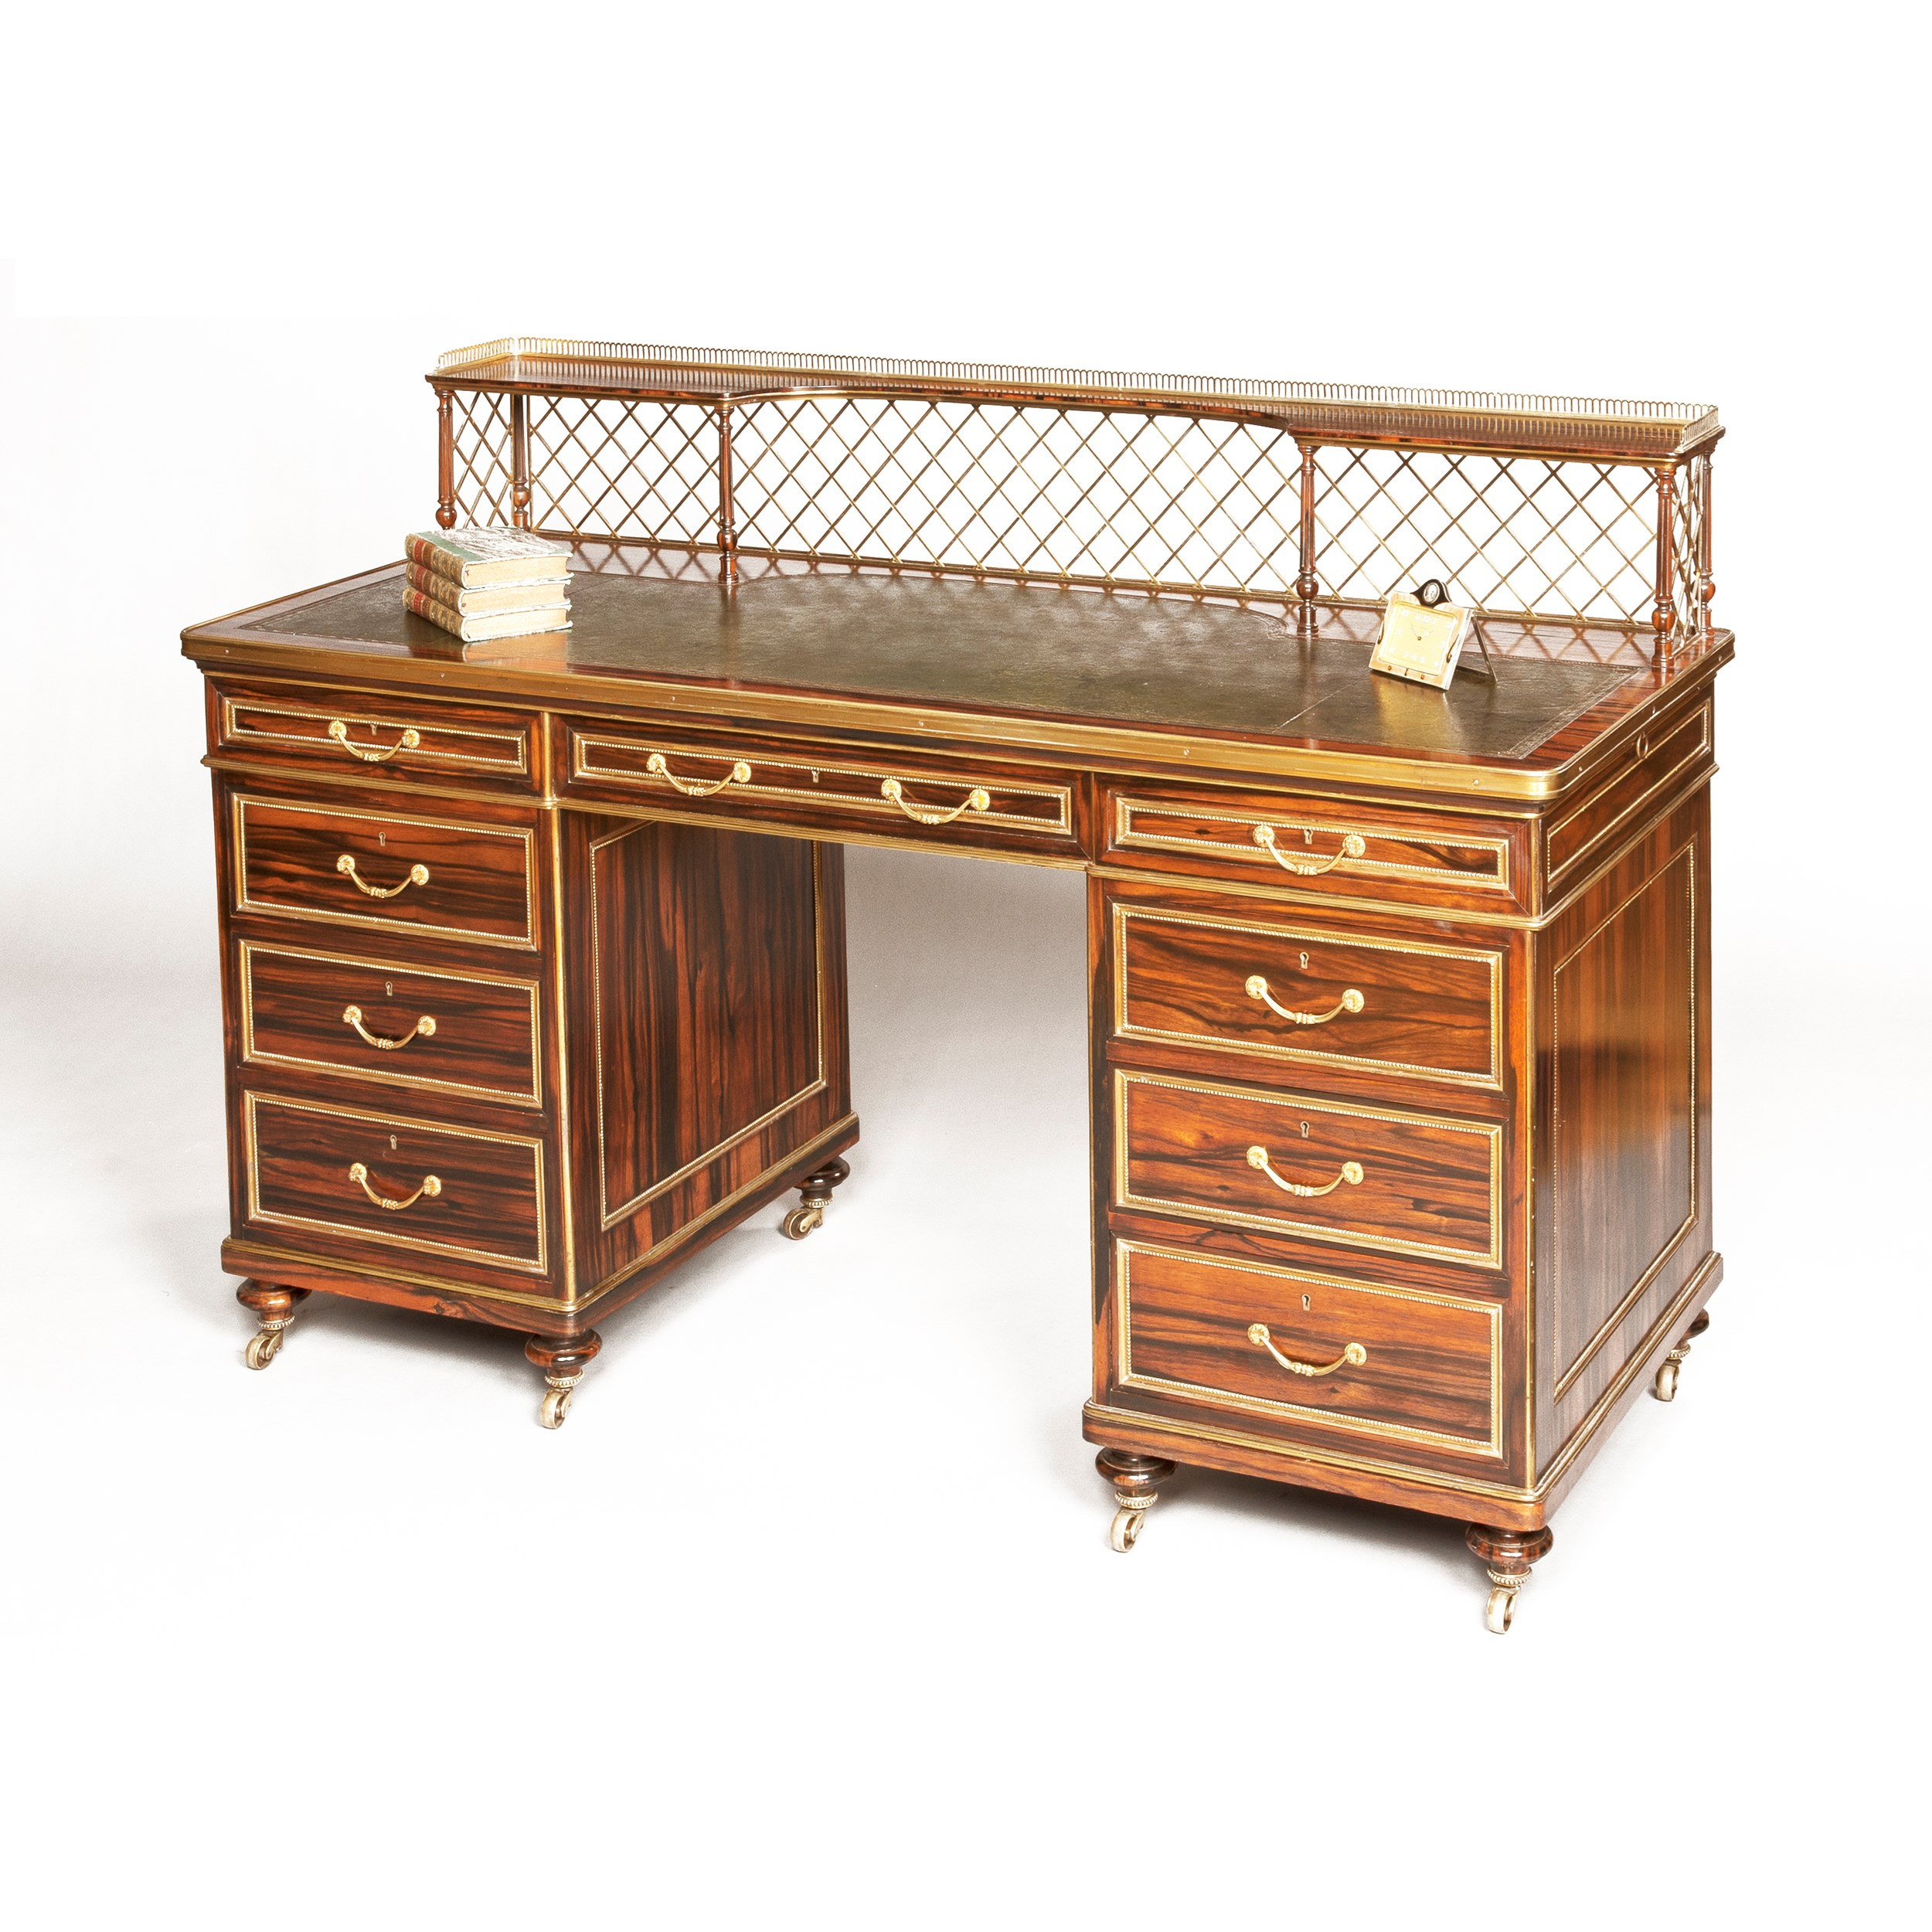 A Very Fine Writing Desk, firmly attributed to Wright & Mansfield, circa 1860. Butchoff Antiques, London.